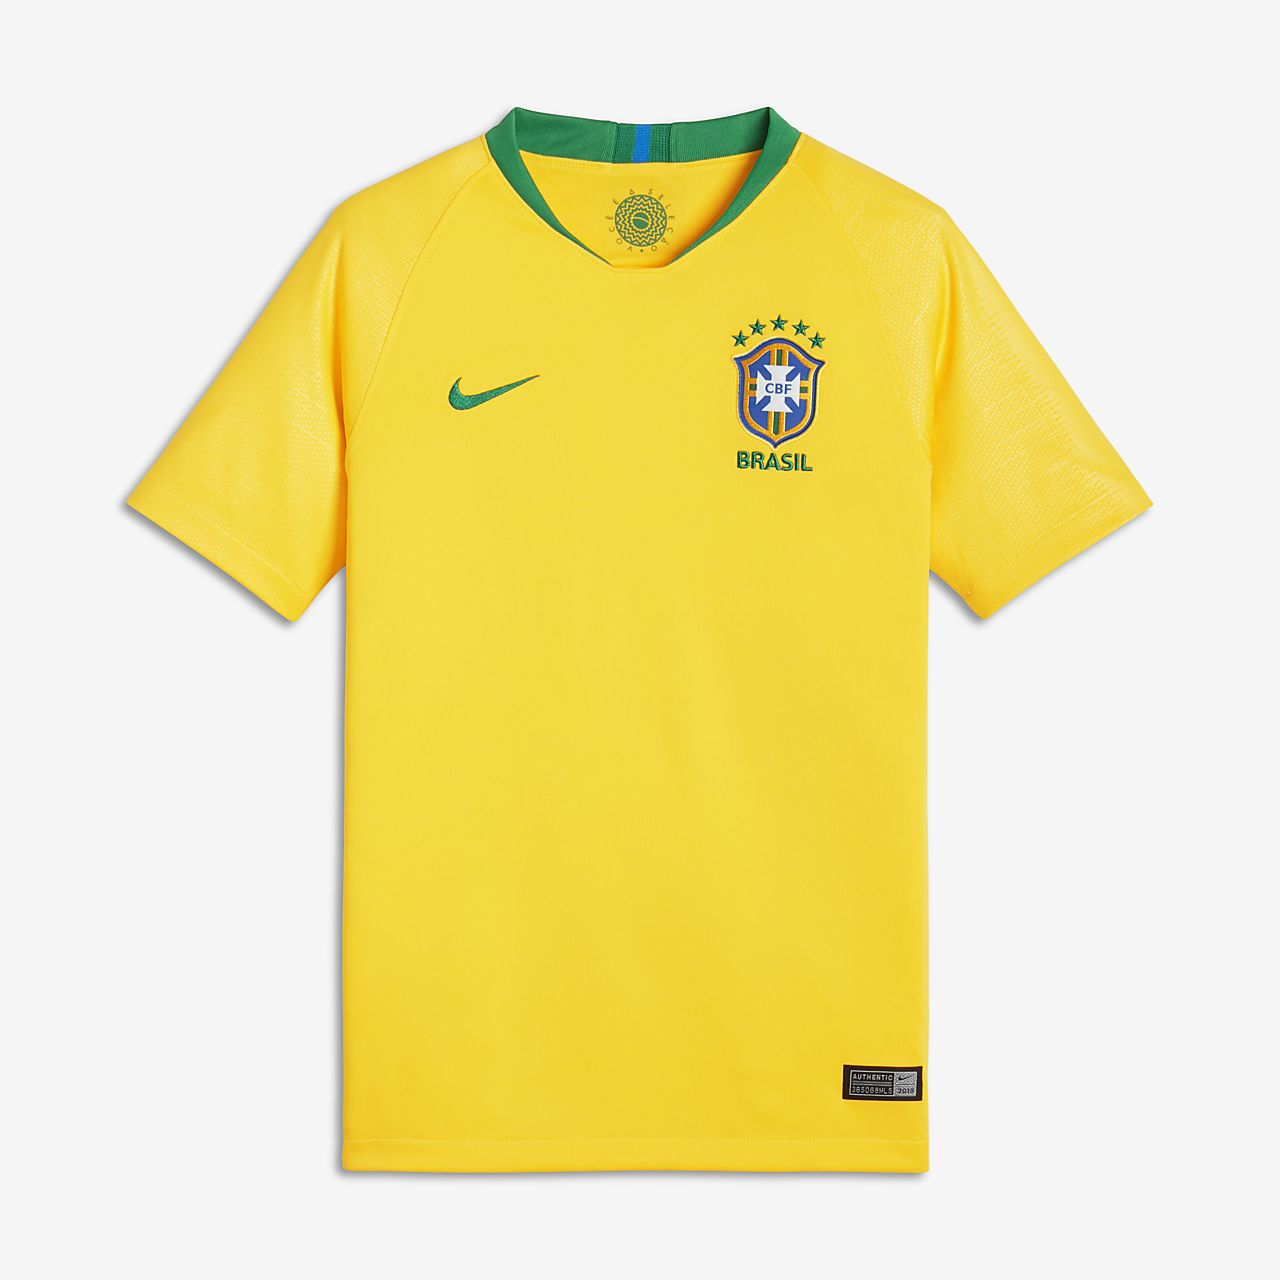 2018 Brasil CBF Stadium Home fotballdrakt for store barn